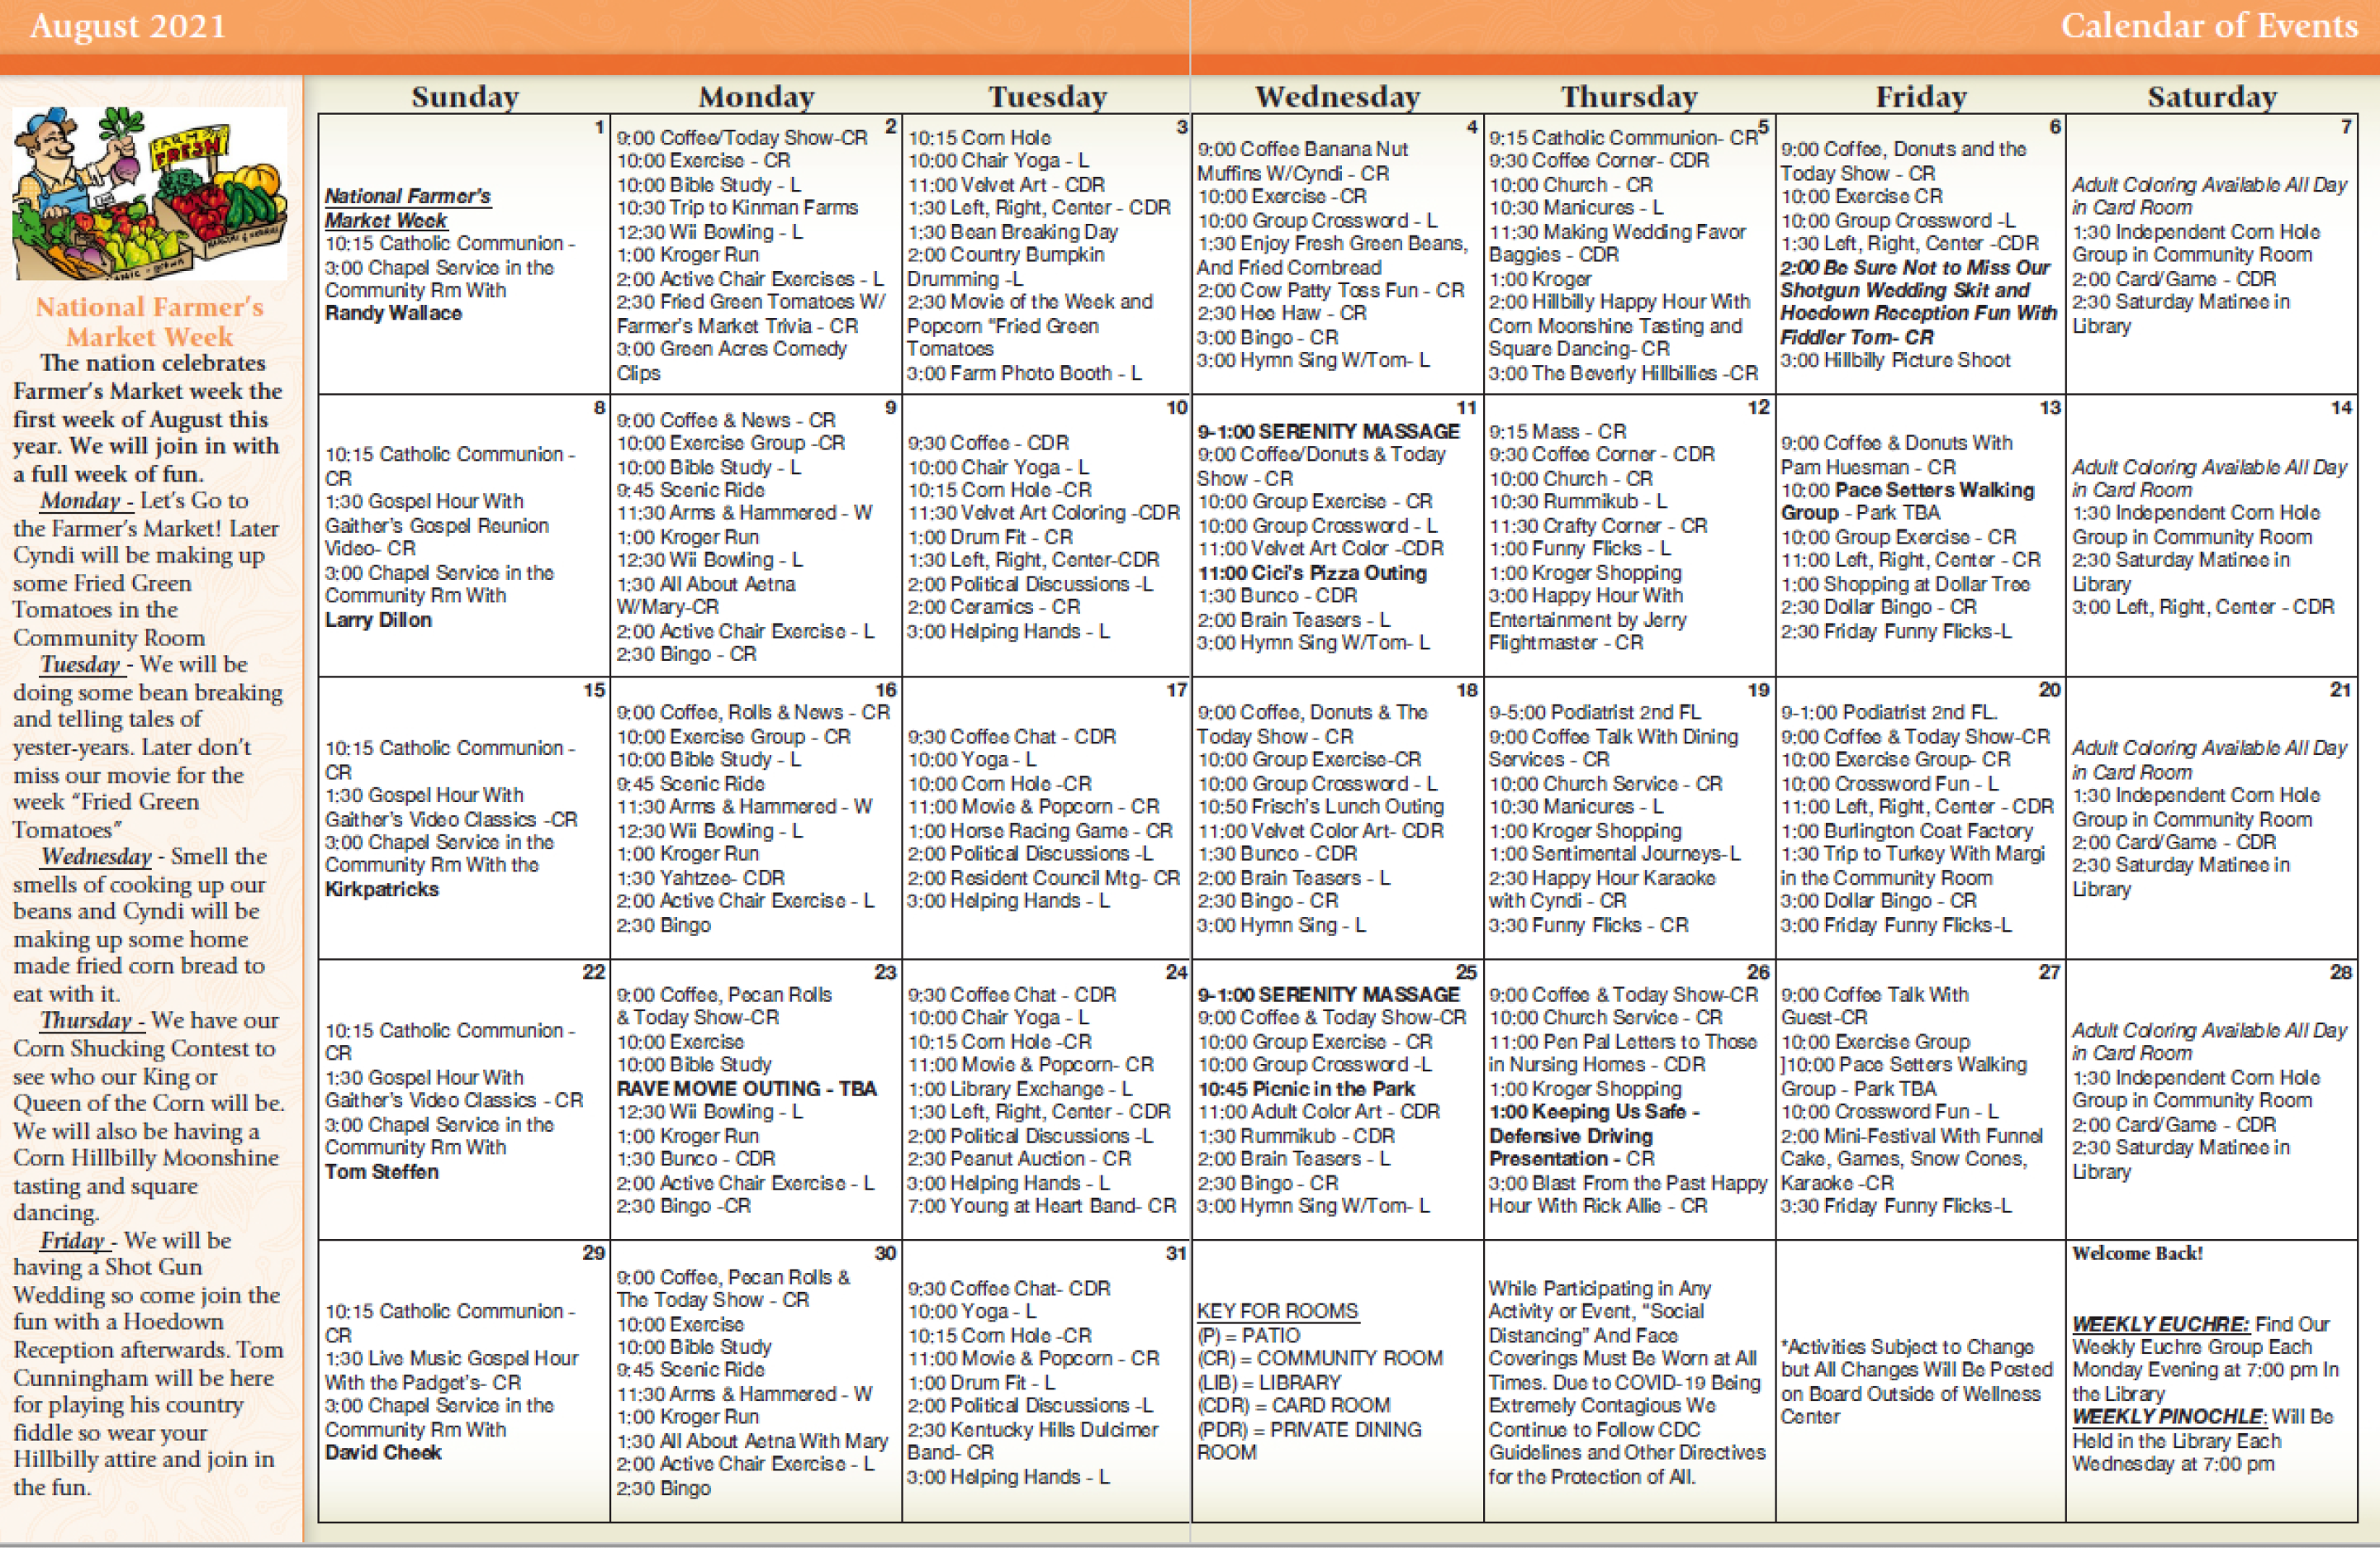 Colonial Heights And Gardens August Calendar